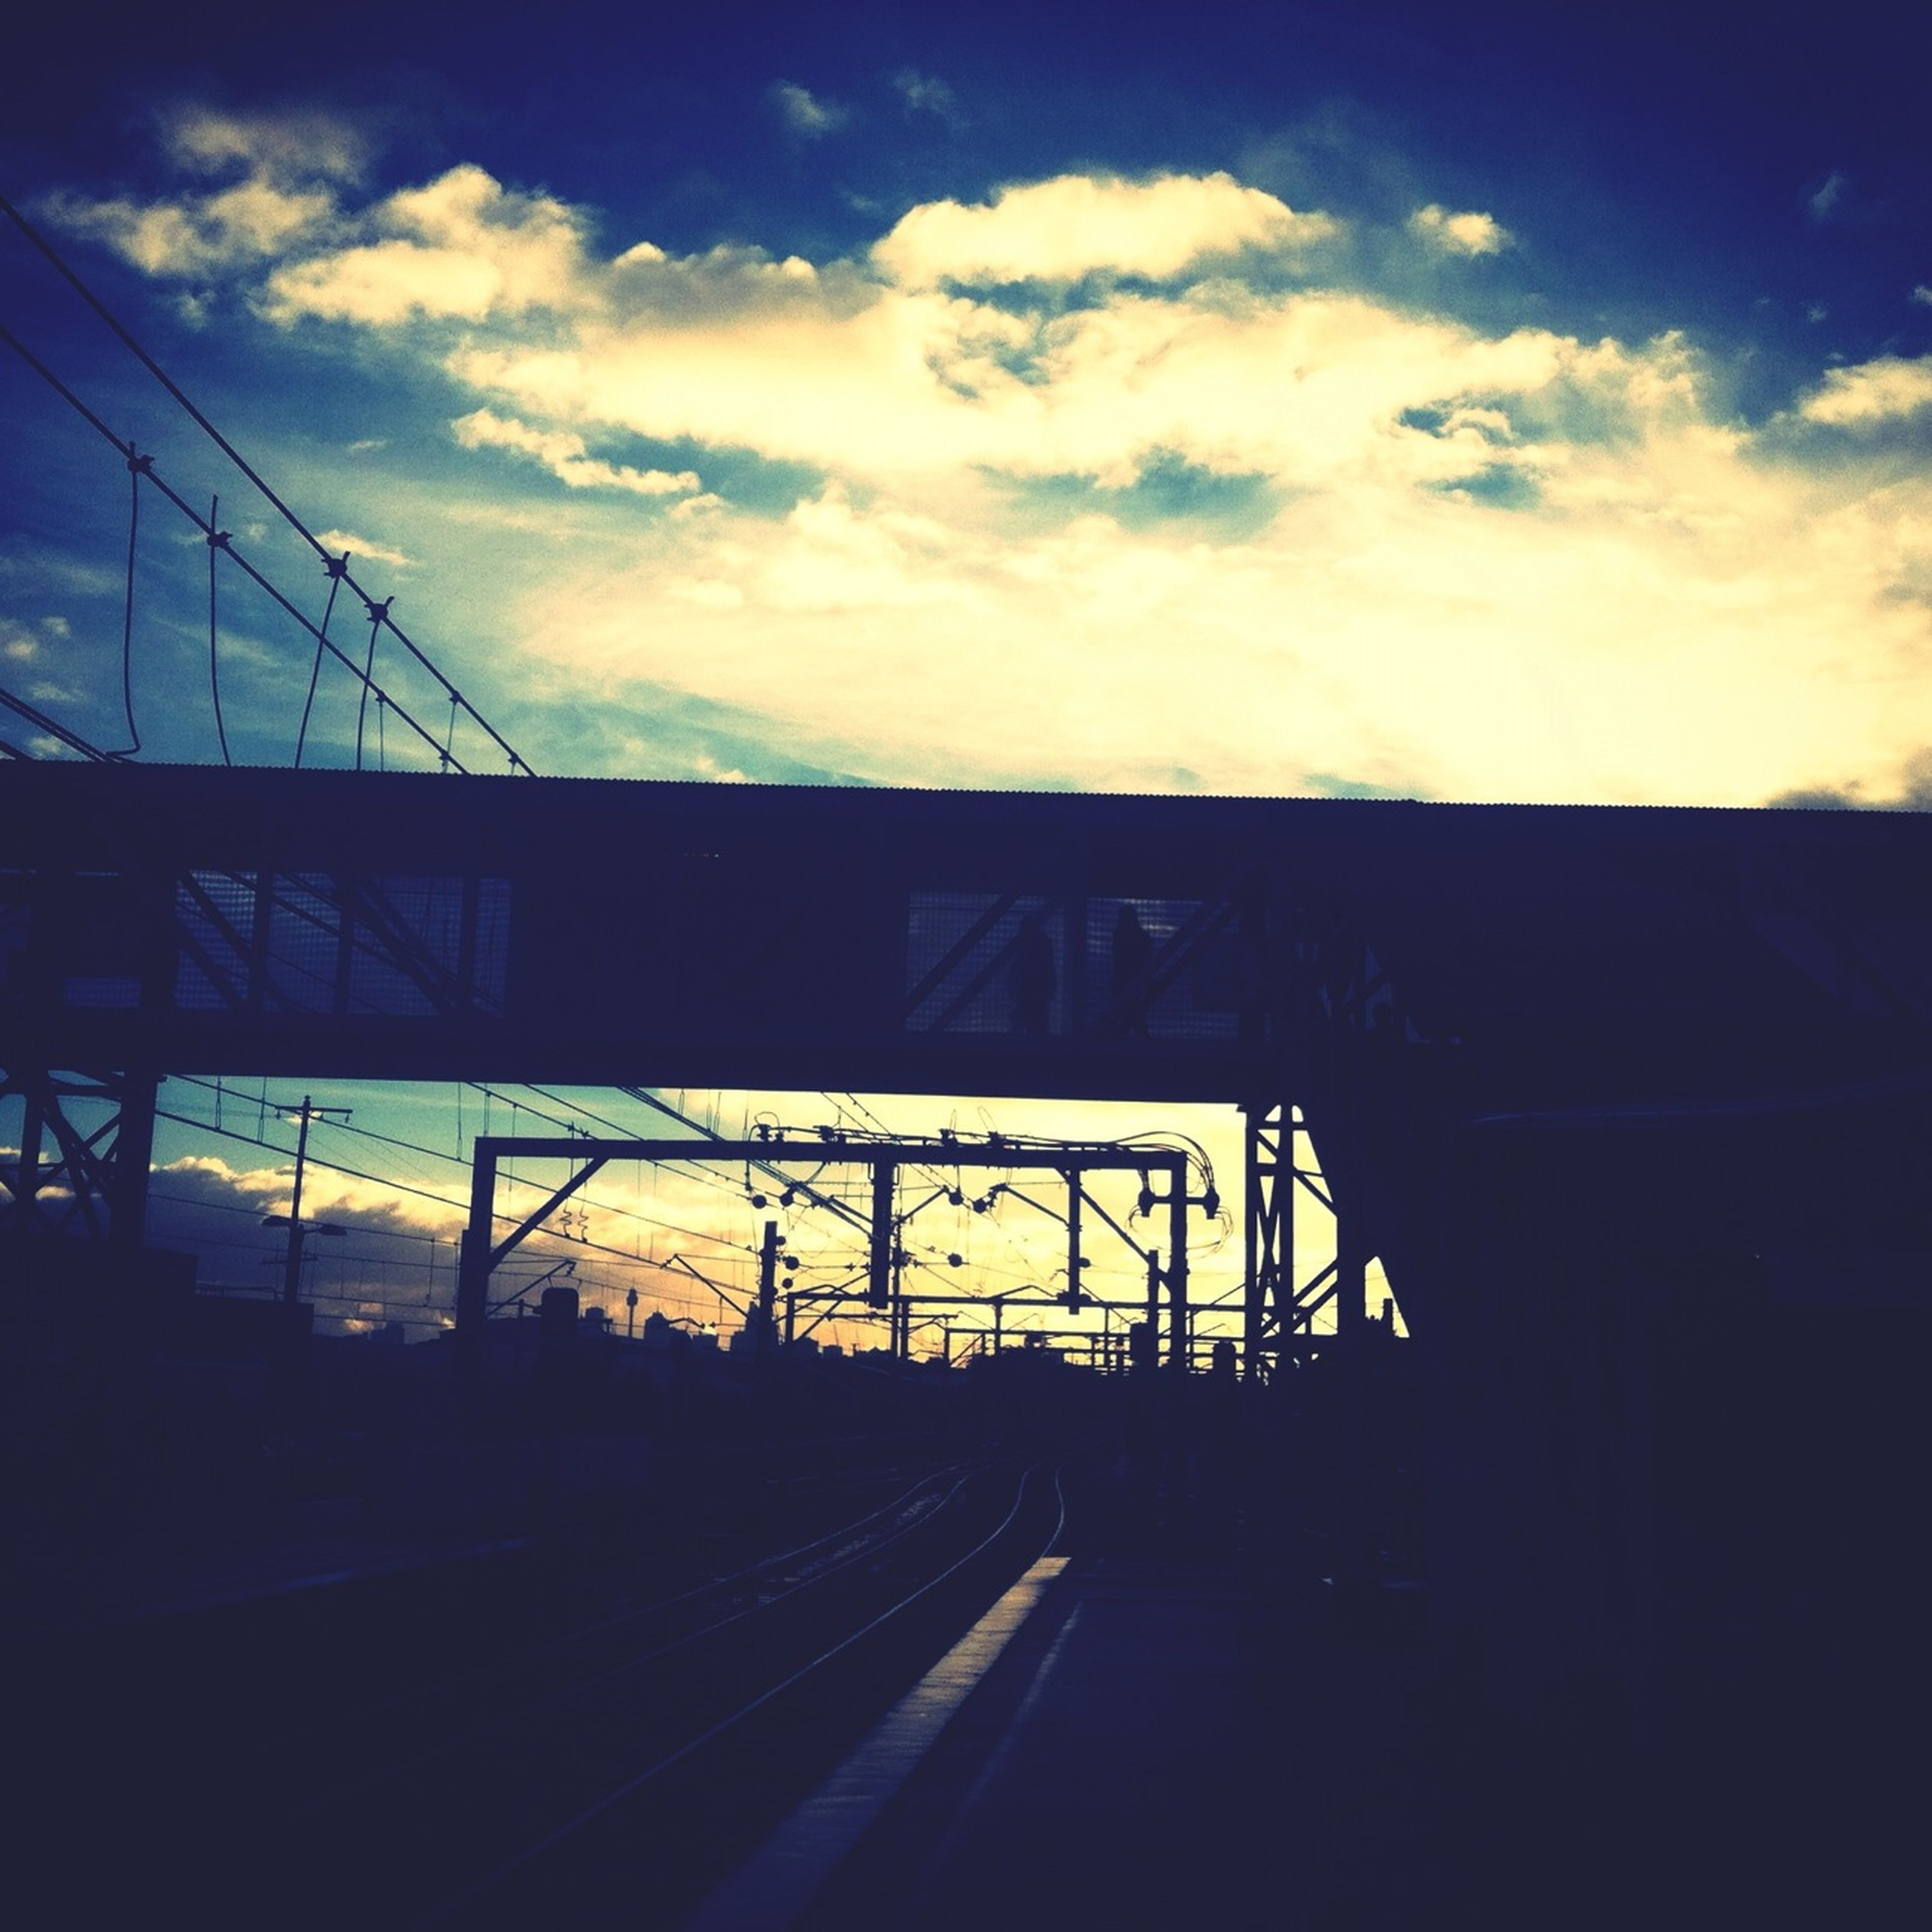 sunset, sky, transportation, connection, cloud - sky, built structure, architecture, silhouette, railroad track, bridge - man made structure, the way forward, rail transportation, cloud, dusk, diminishing perspective, cloudy, no people, outdoors, road, orange color